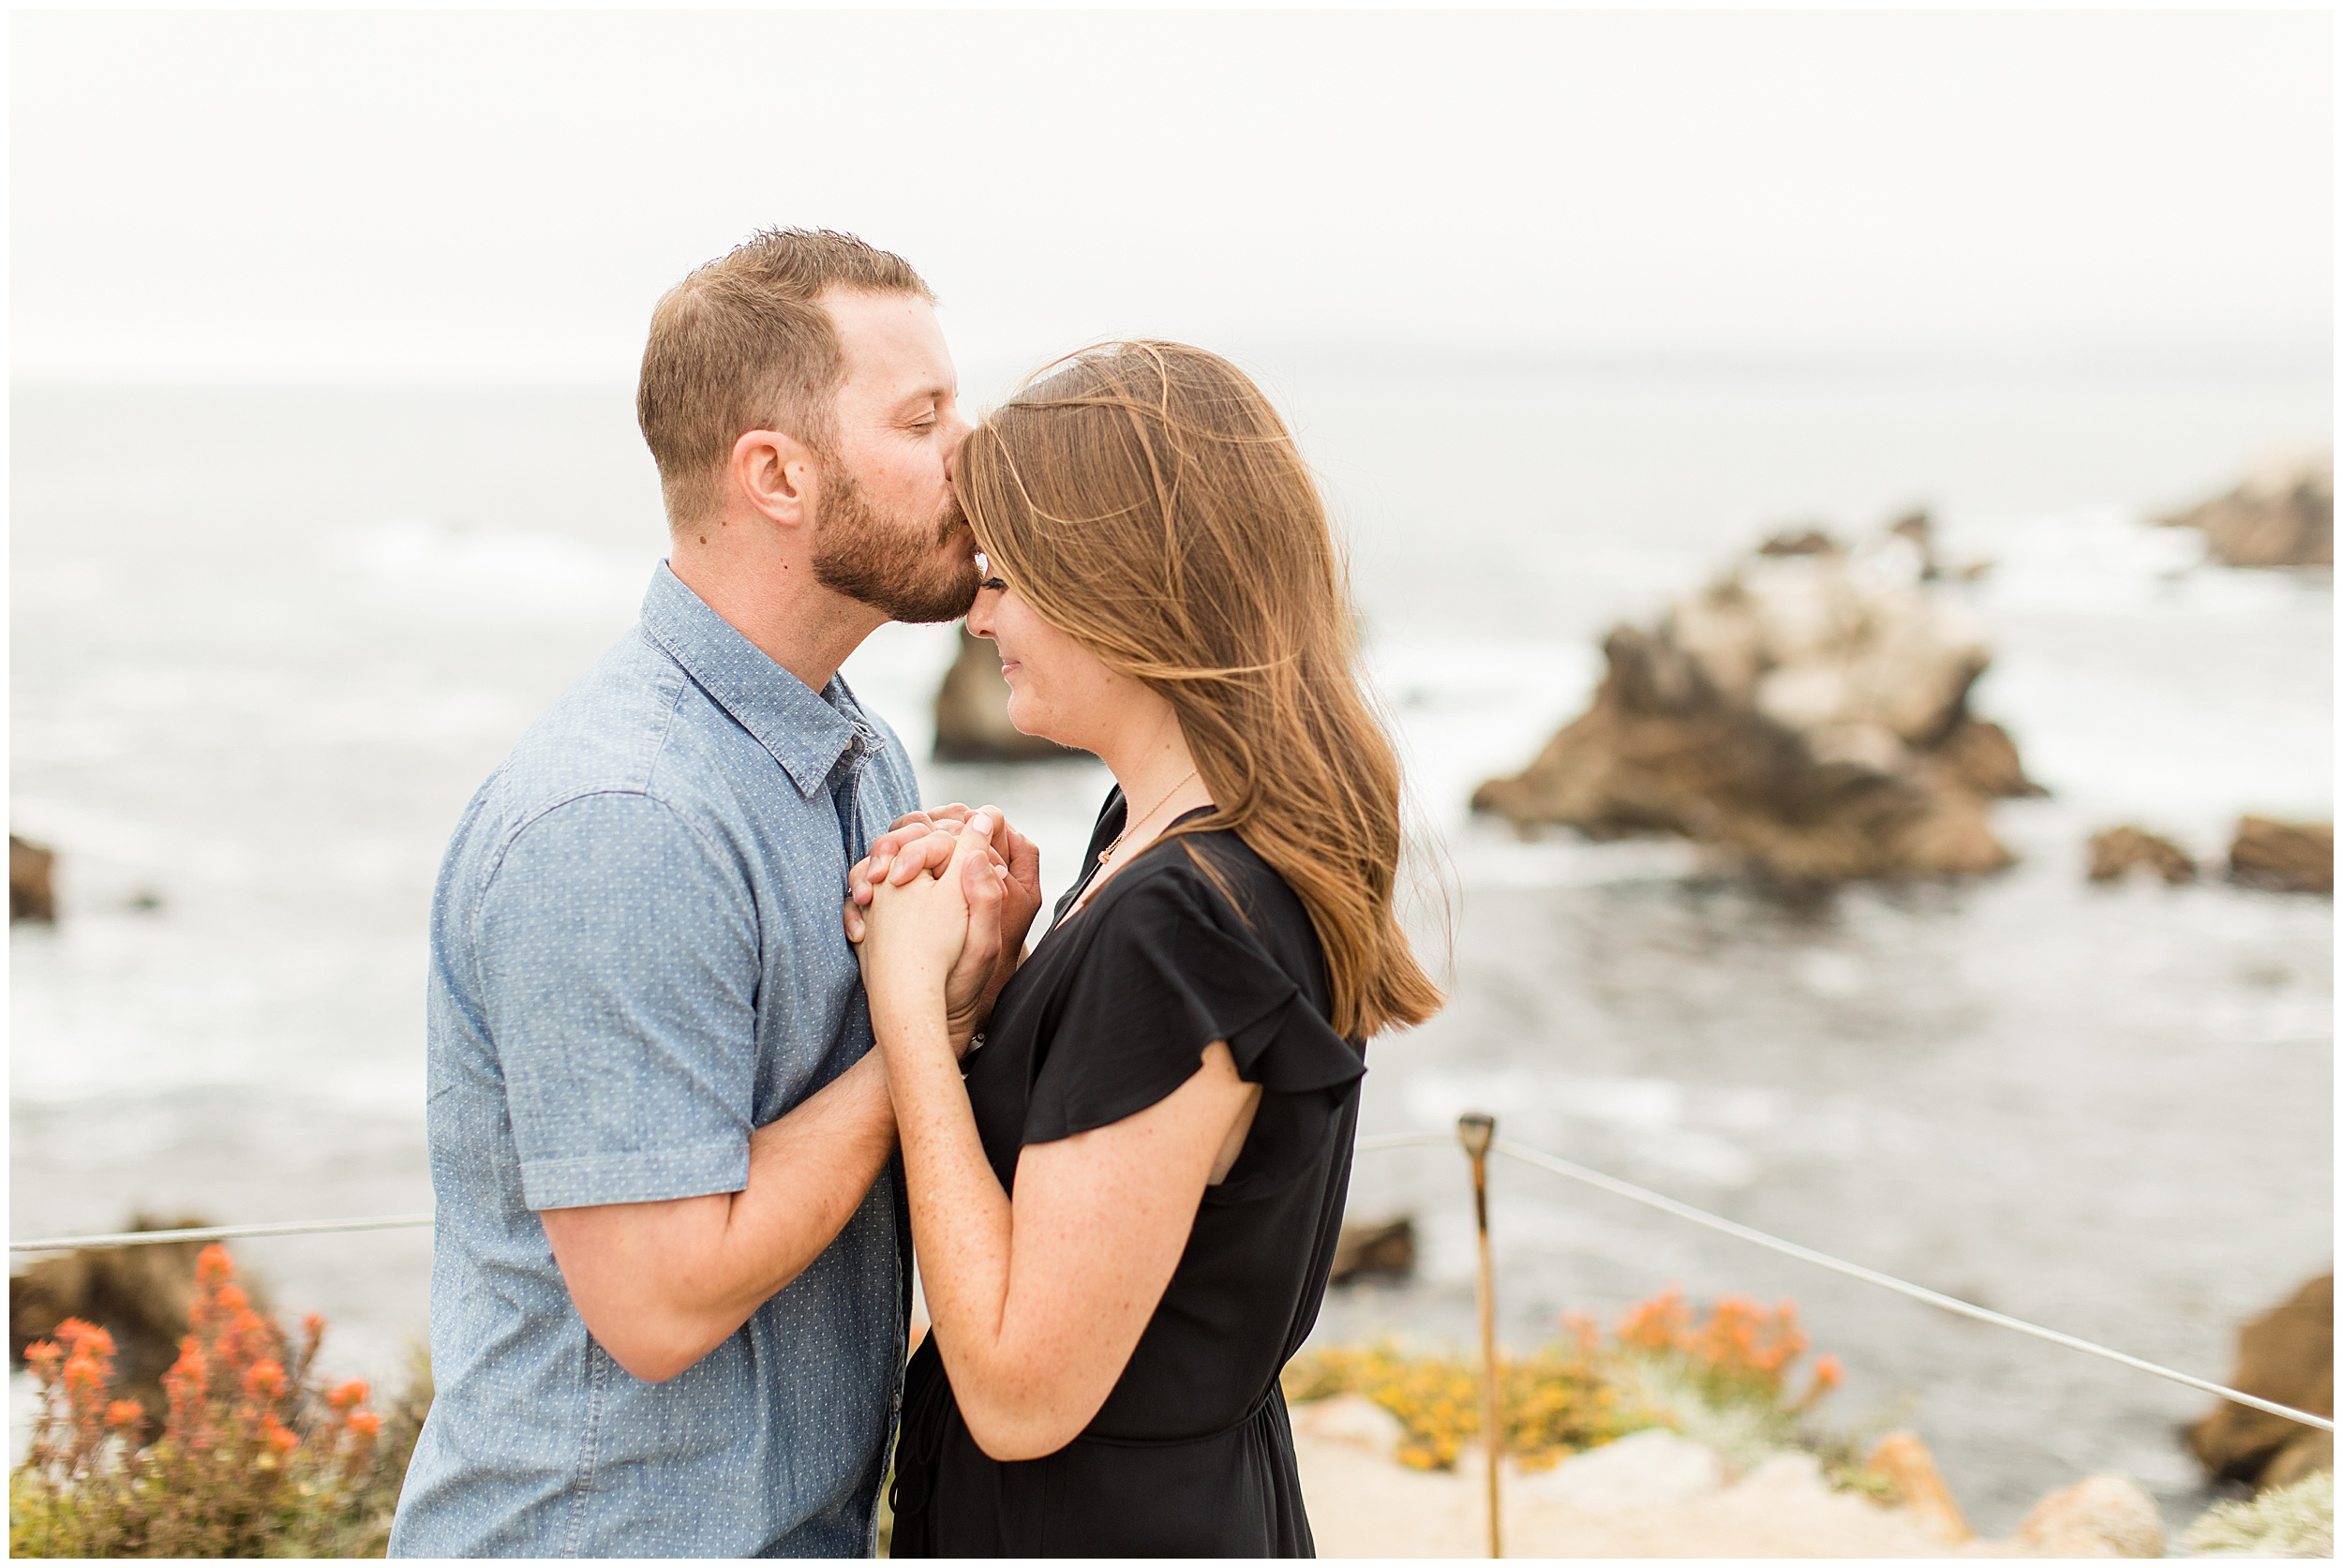 2019 carmel by the sea surprise proposal engagement session wedding photographer angela sue photography_0009.jpg